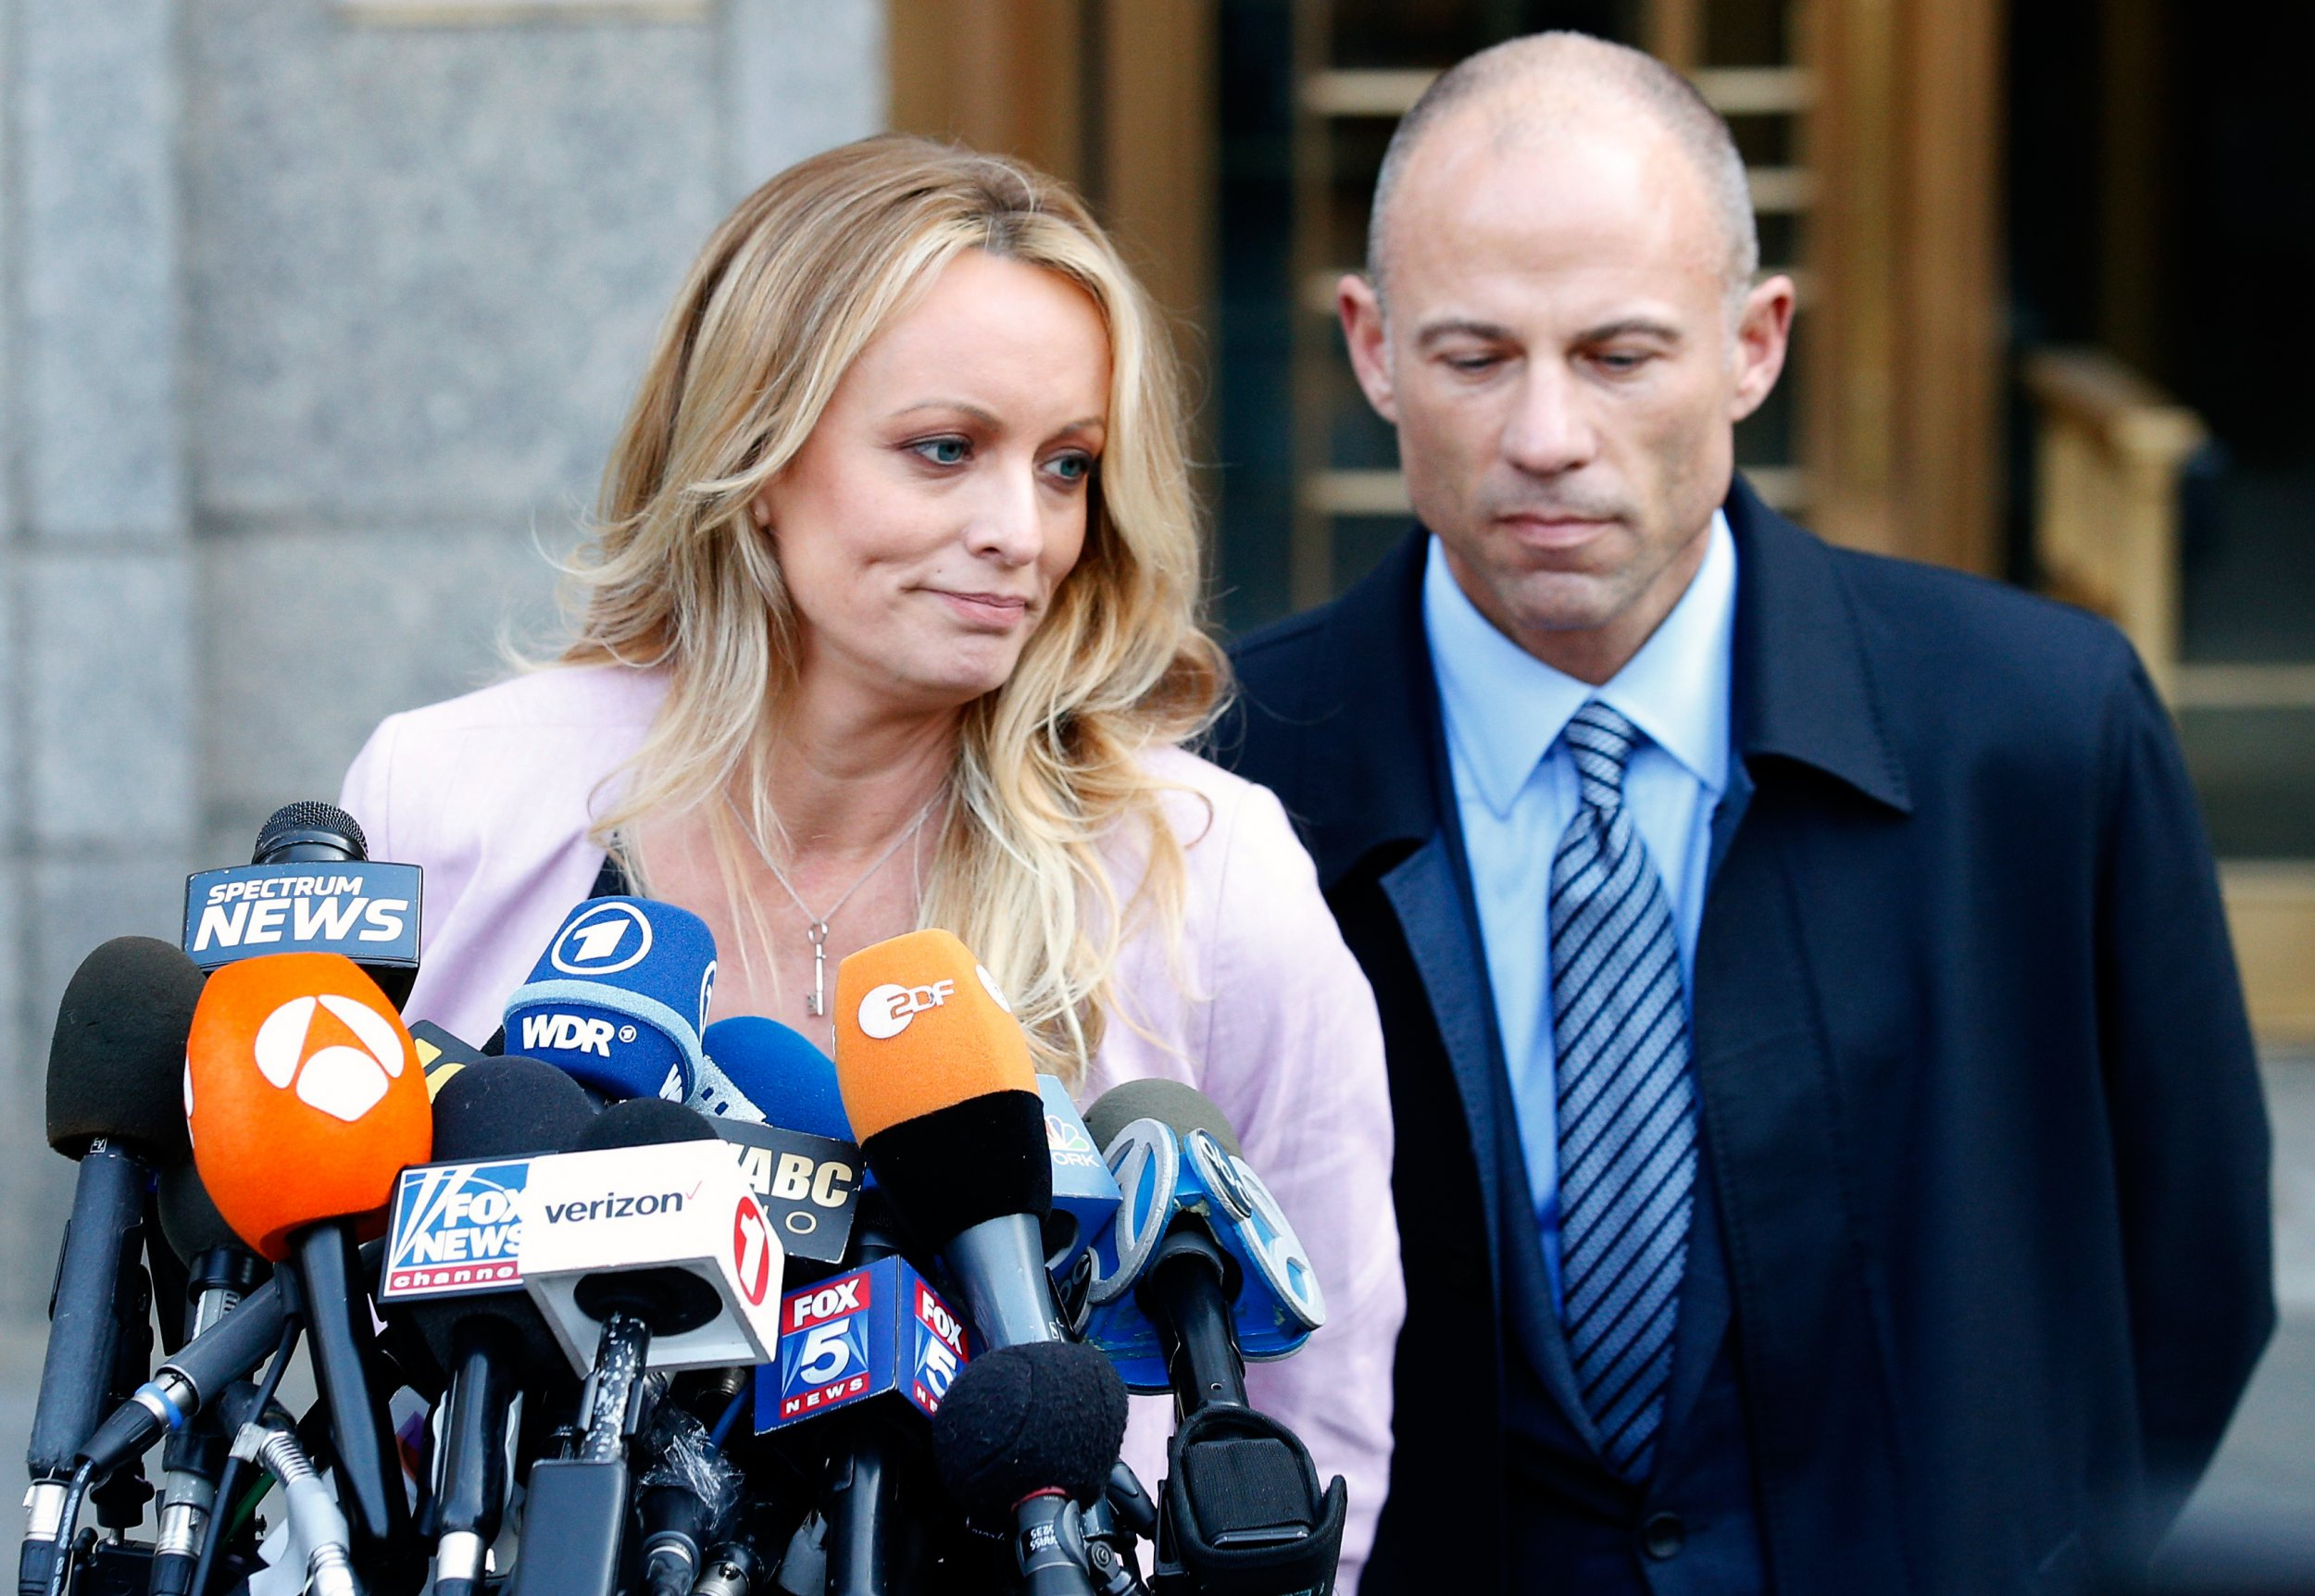 Michael Avenatti stole a line from Bill Clinton when he was asked if he slept with Stormy Daniels